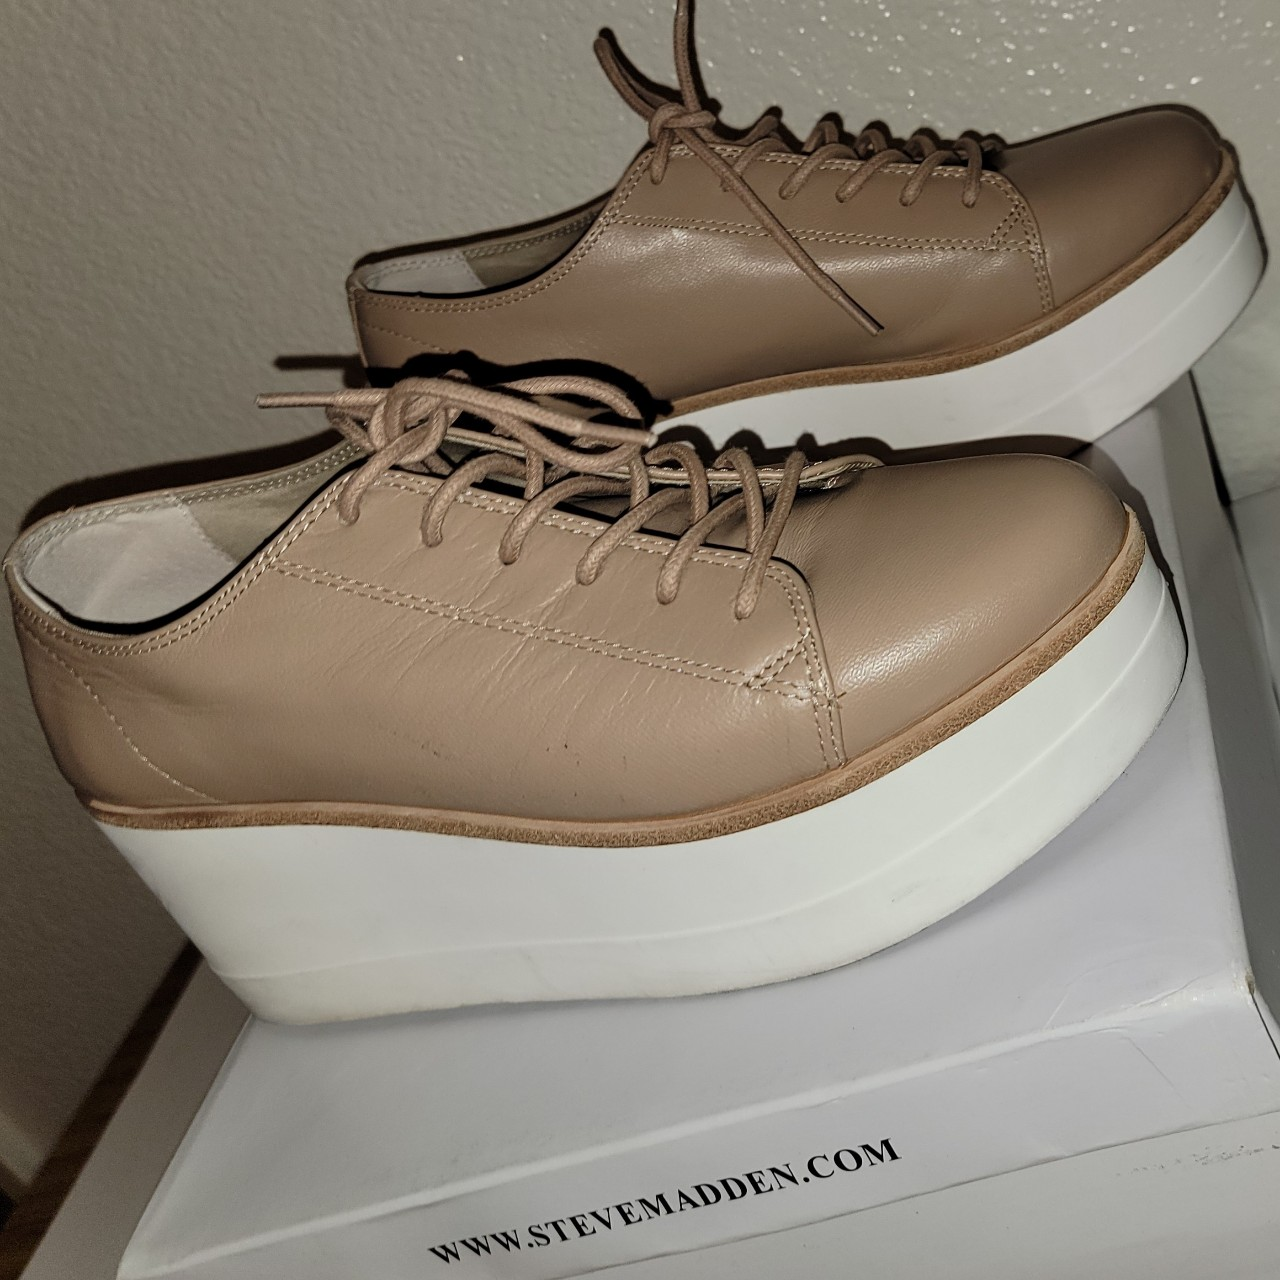 Product Image 1 - STEVE MADDEN OXFORD STYLE LACE